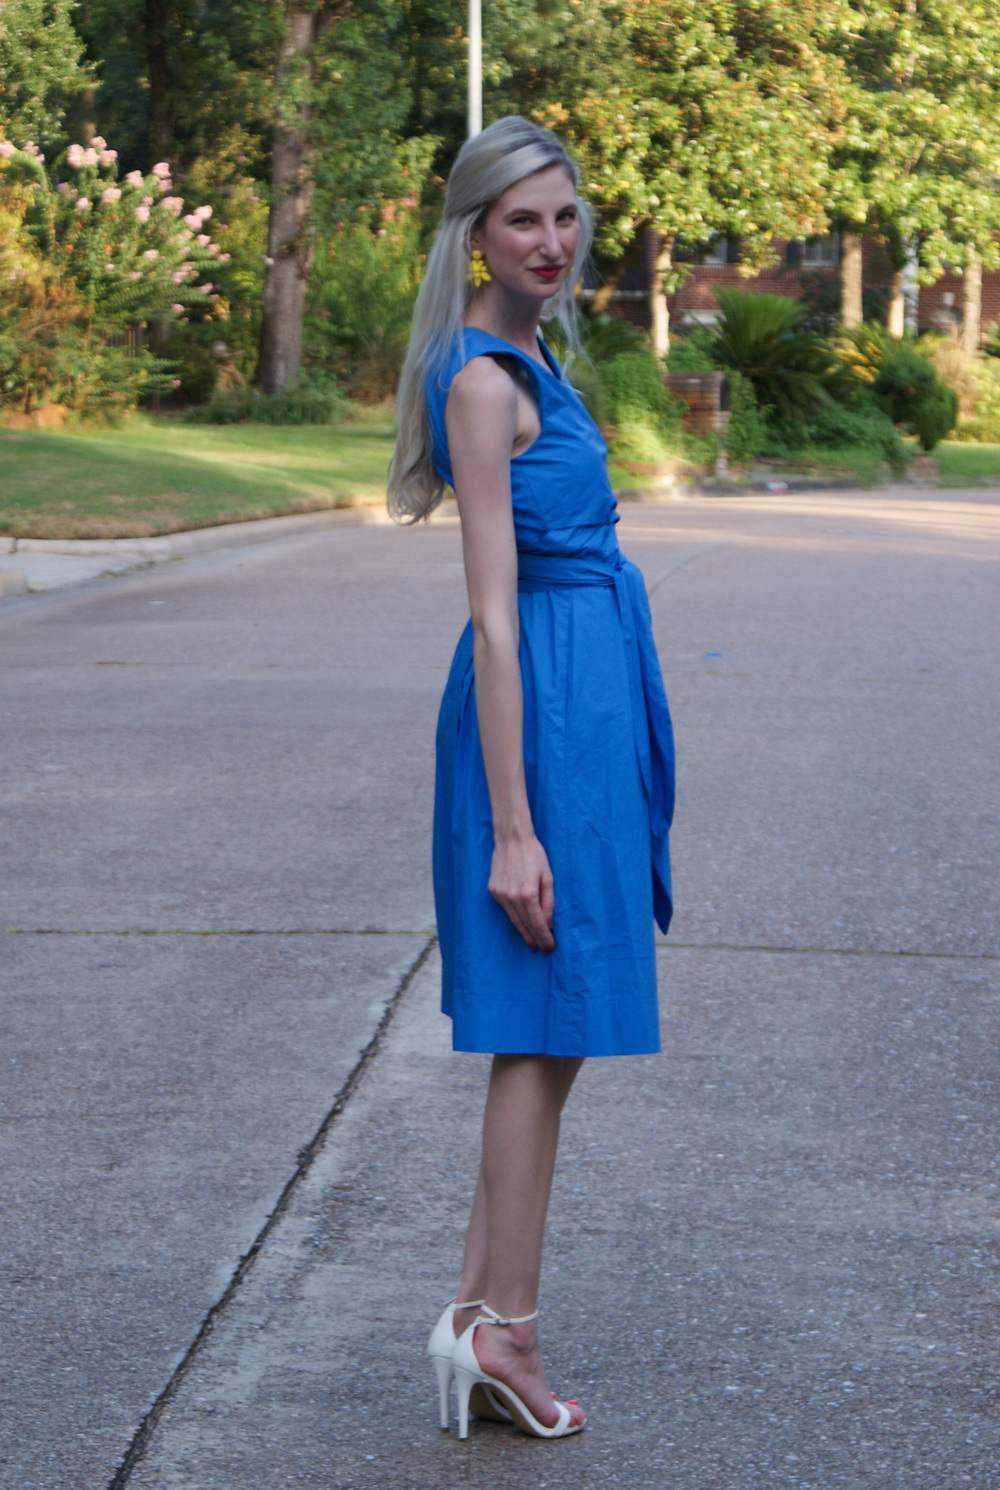 J.Crew blue wrap dress, J.Crew yellow statement earrings, white steve madden stecy ankle strap heeled sandal, kendra scott andy station cuff, revlon ultra hd matte lipstick in devotion